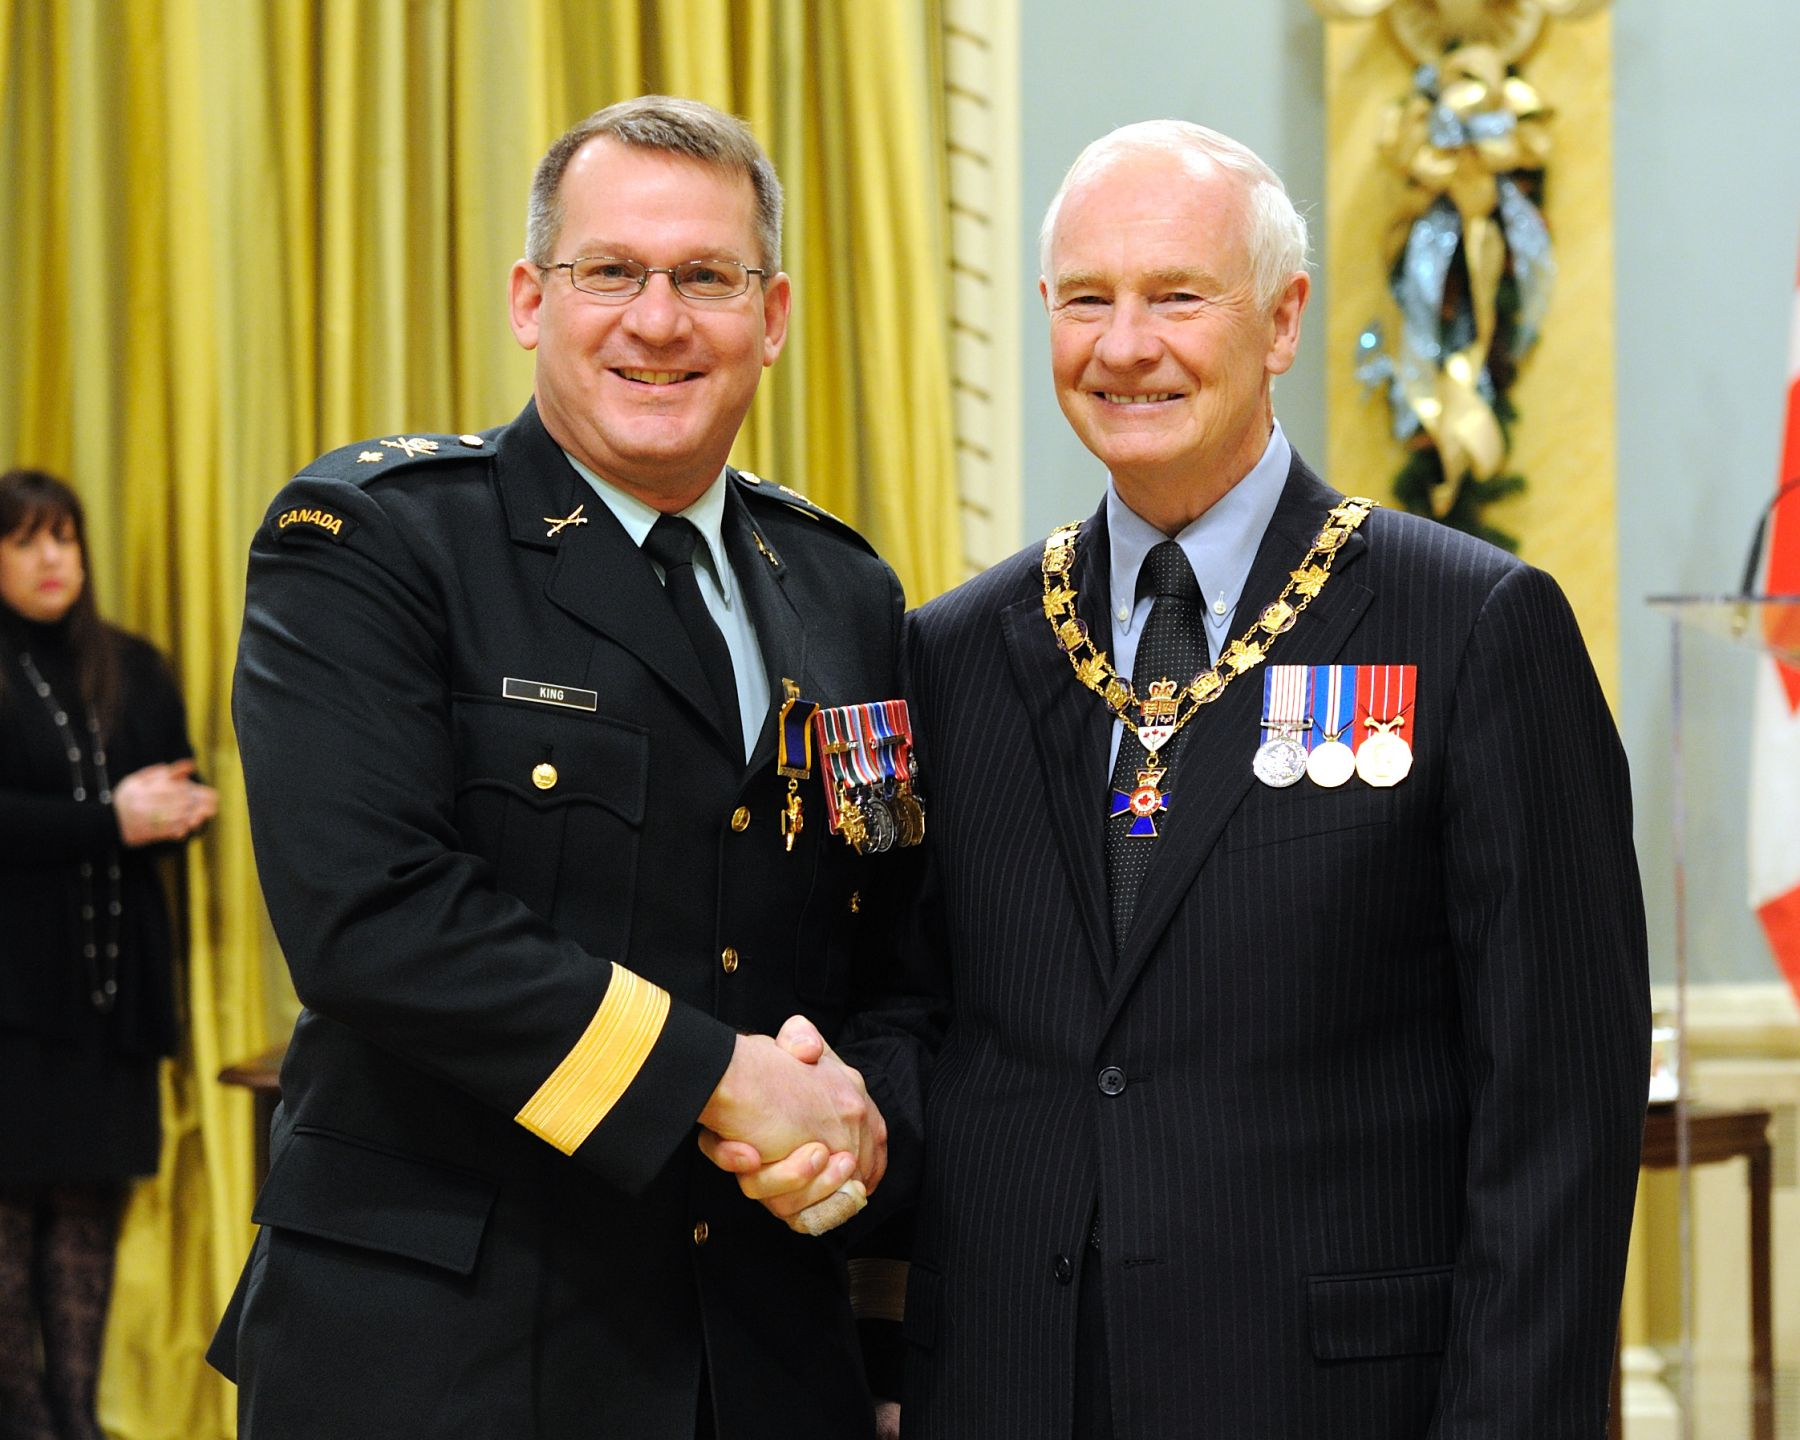 His Excellency presented the Order of Military Merit at the Officer level (O.M.M.) to Colonel Craig King, O.M.M., C.D., M.B.E., Canadian Manoeuvre Training Centre, Denwood, Alberta.